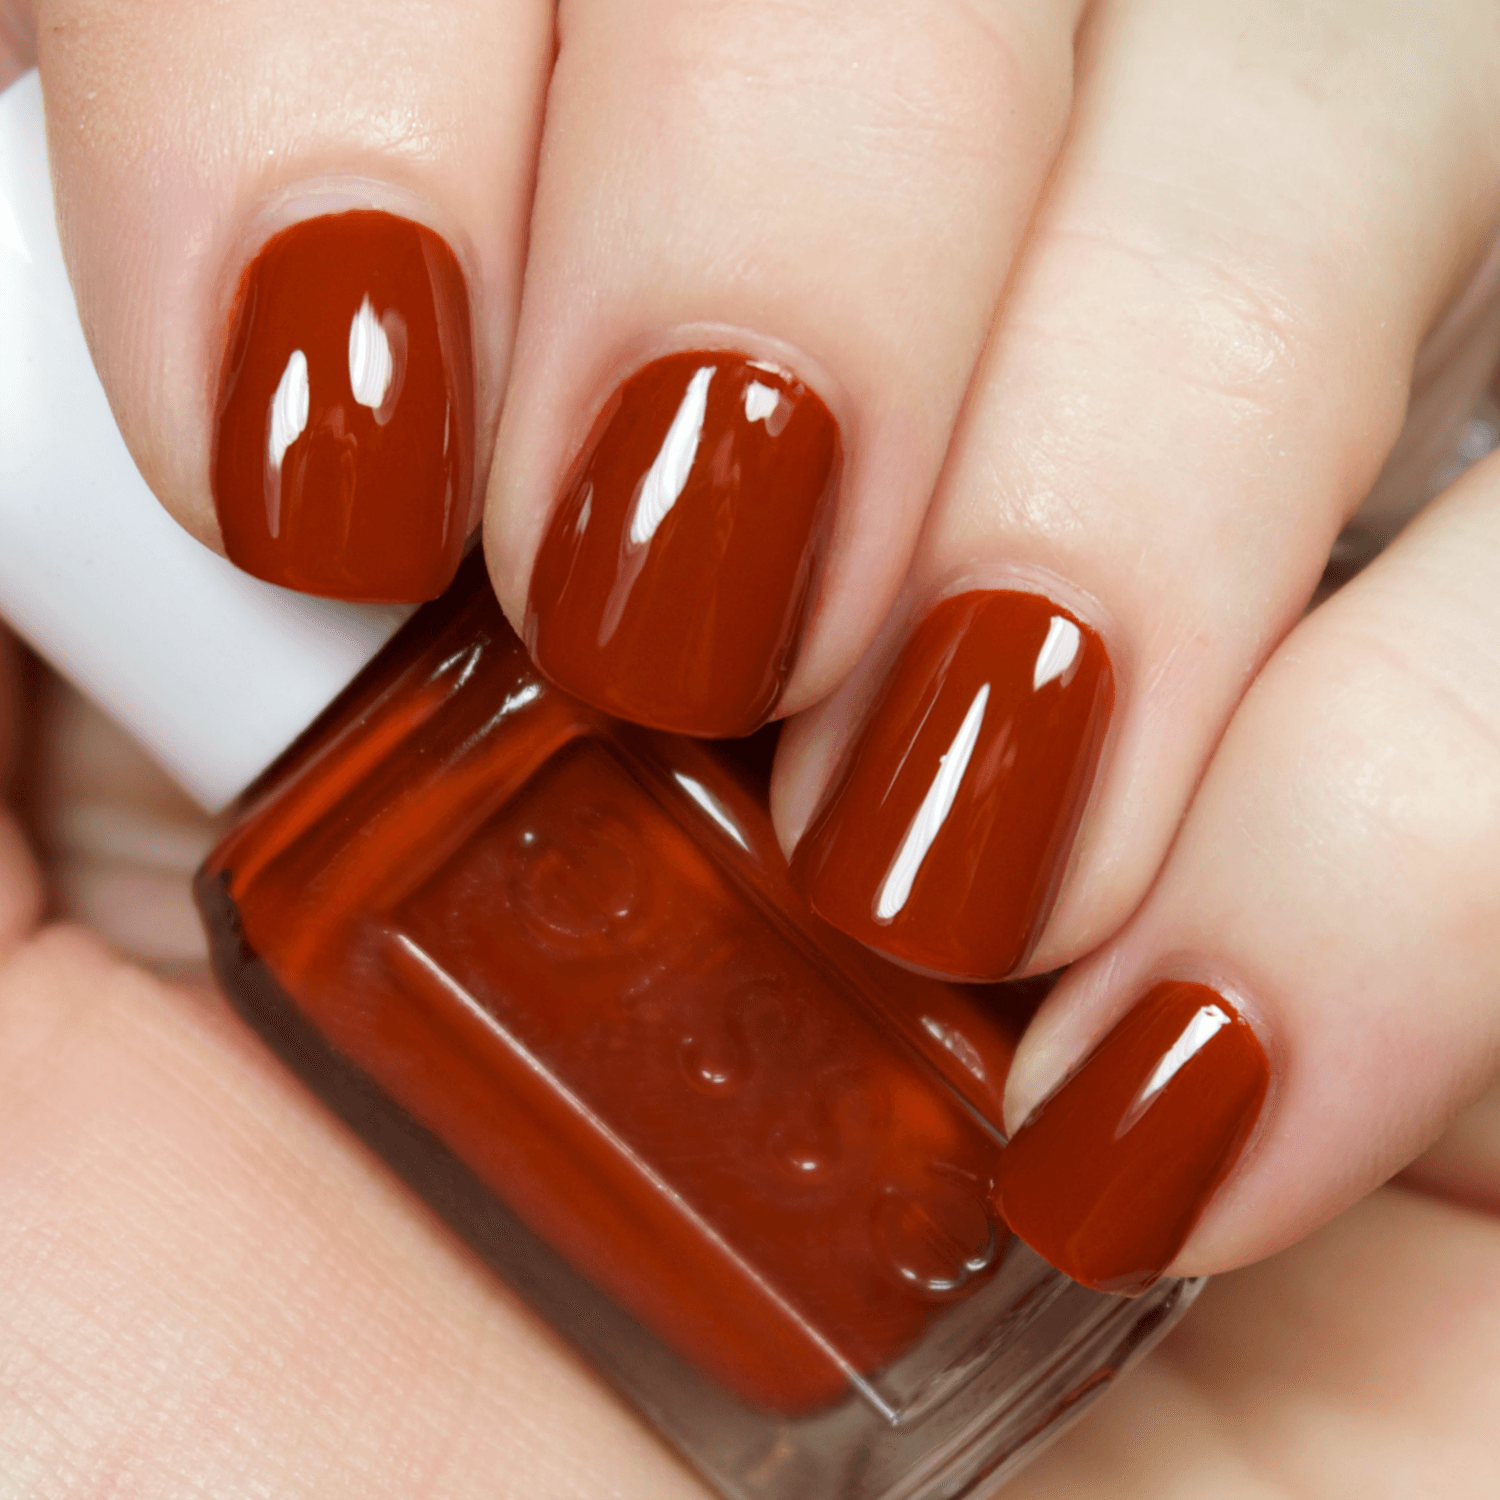 Essie 2016 Fall Collection Mini Set | Fall nail colors, Nail inspo ...